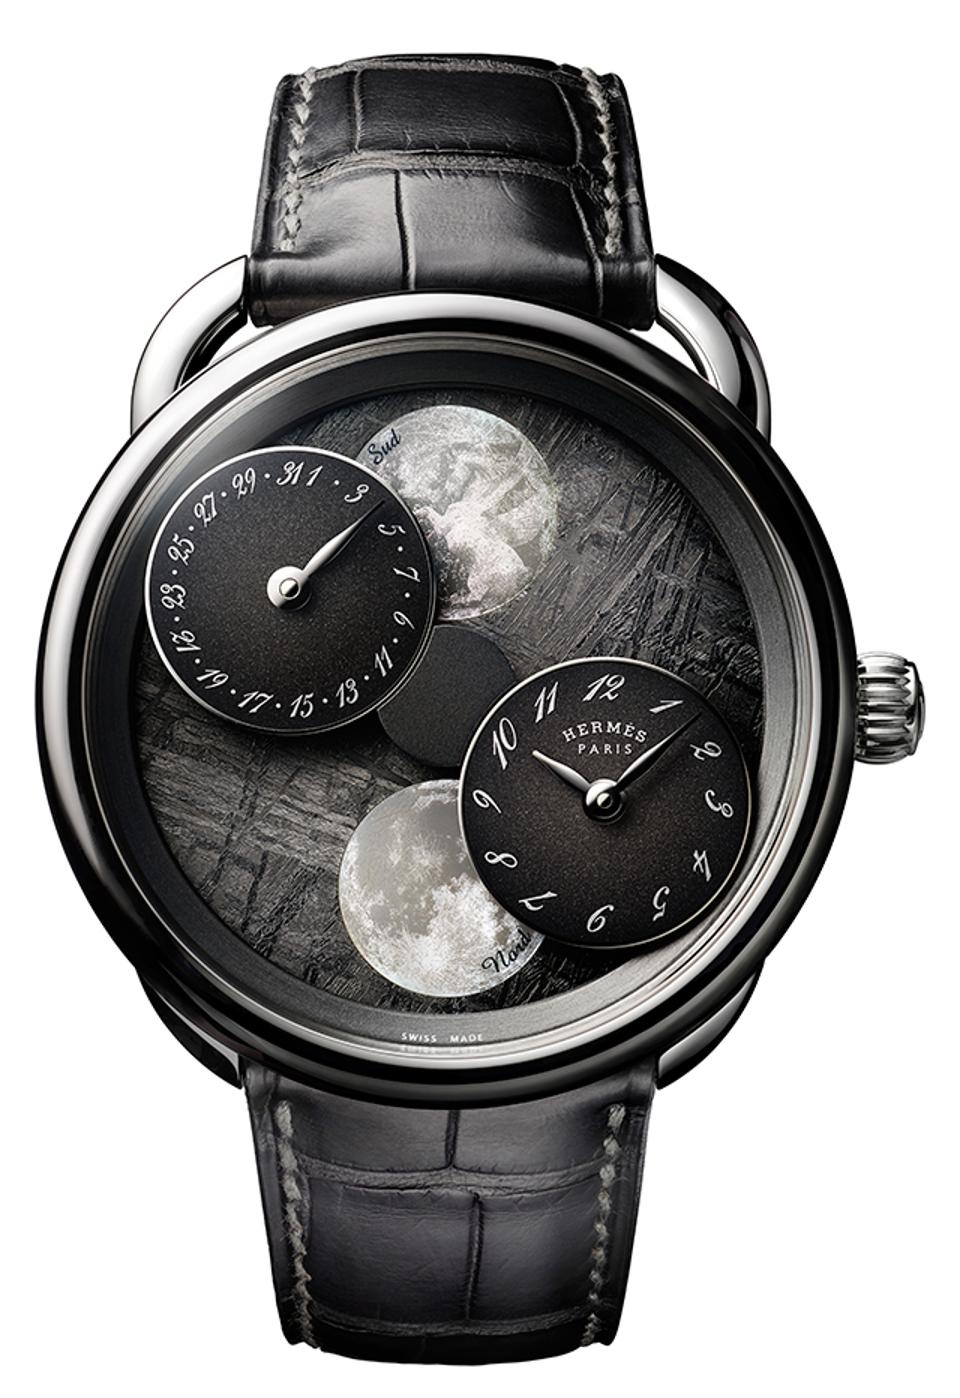 Hermès won the Calendar and Astronomy category for the Arceau L'heure de la lune, a double moon phase indicator for both southern and northern hemispheres.